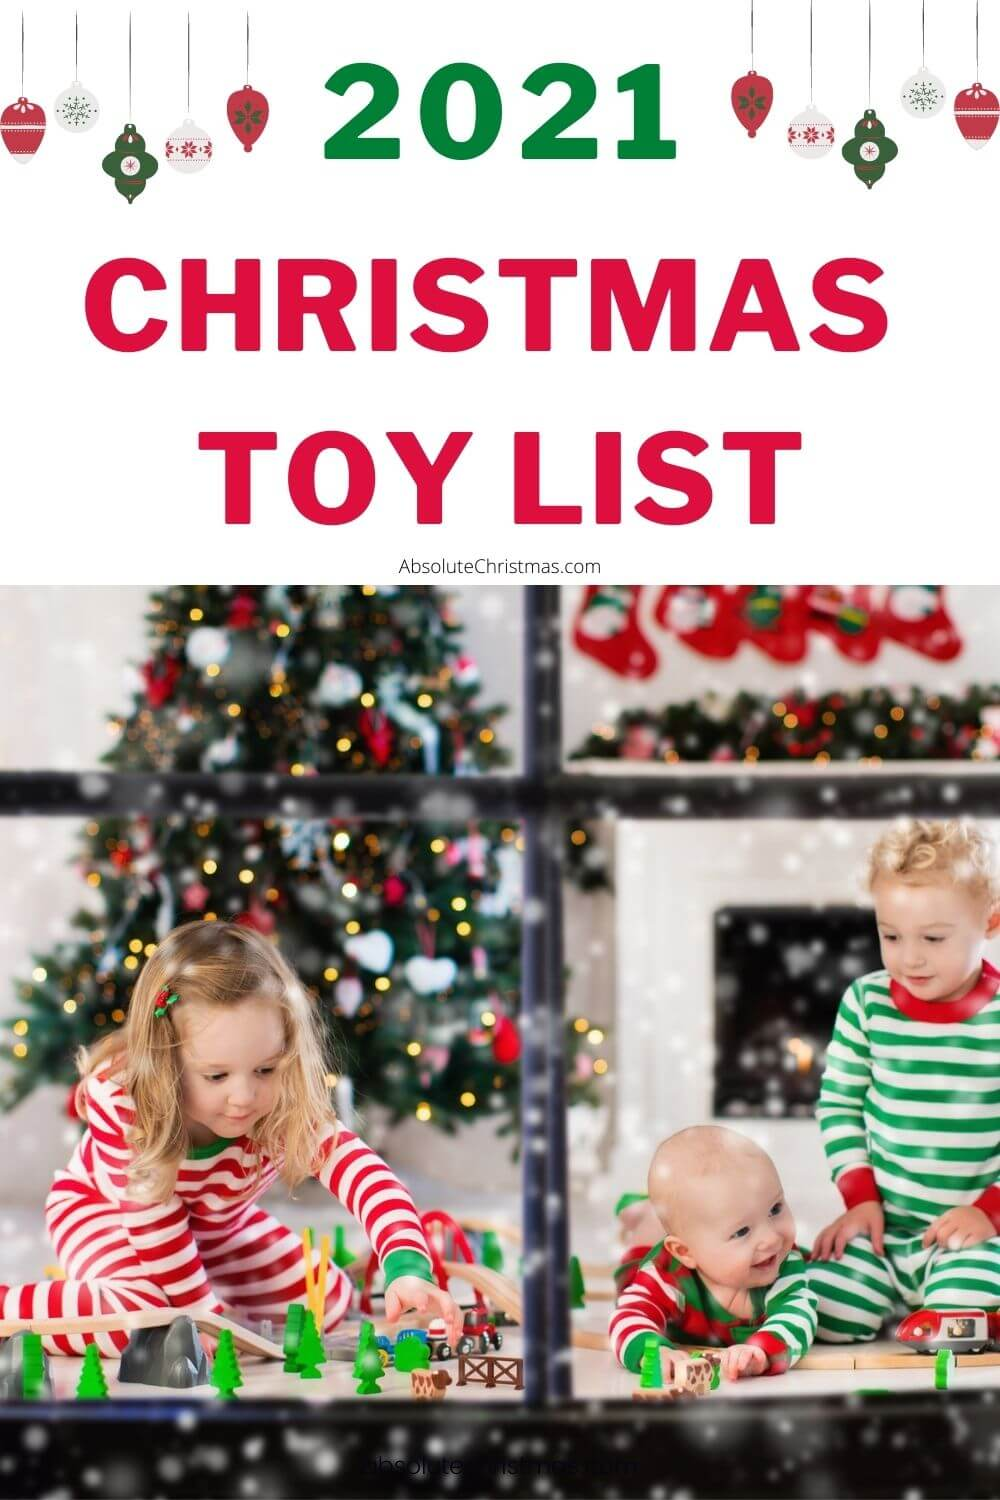 Top Christmas Toys 2021 - A list of the popular toys kids want this Holiday season!